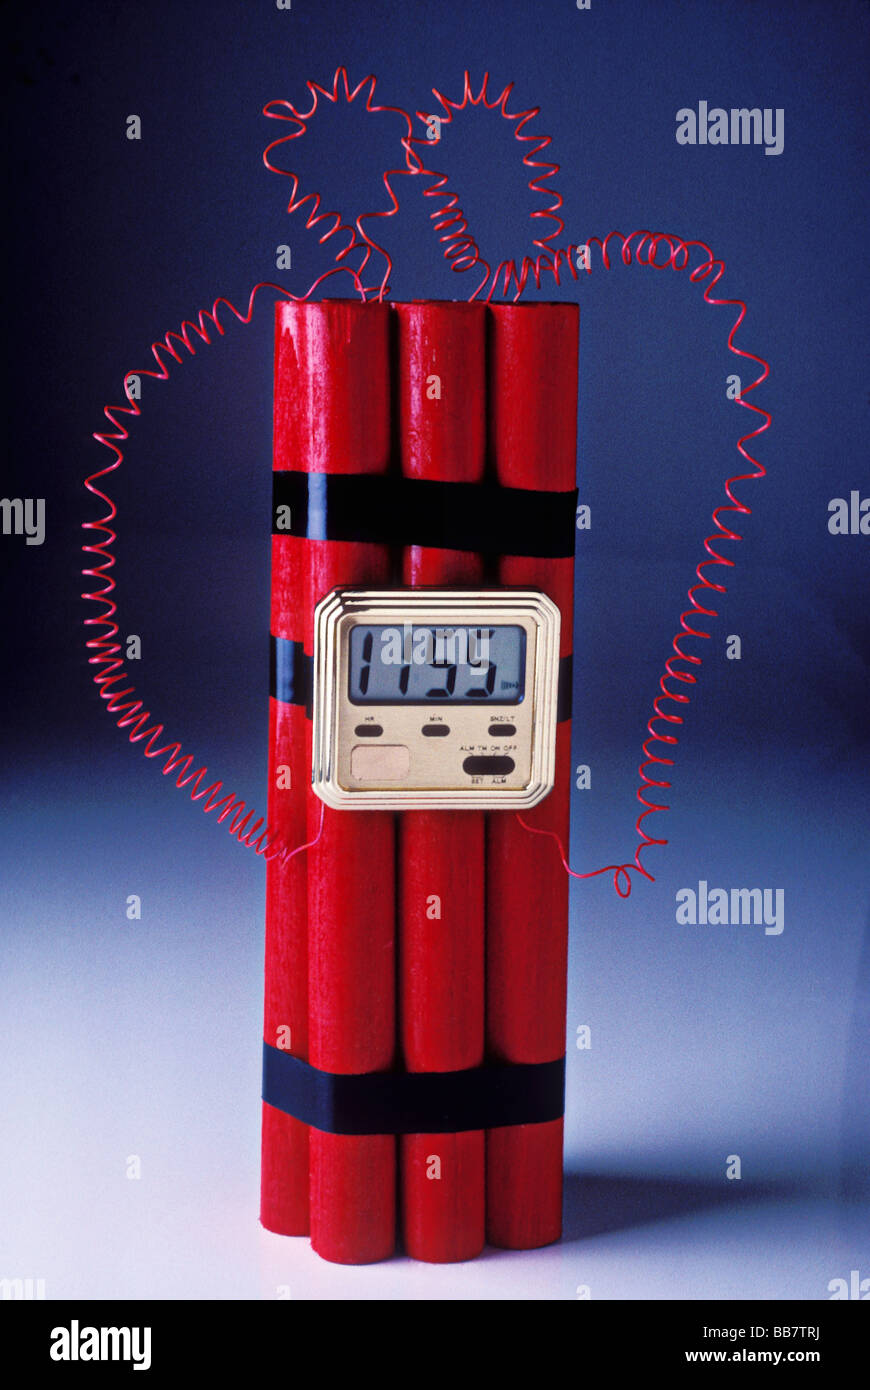 Sticks of dynamite with timer - Stock Image